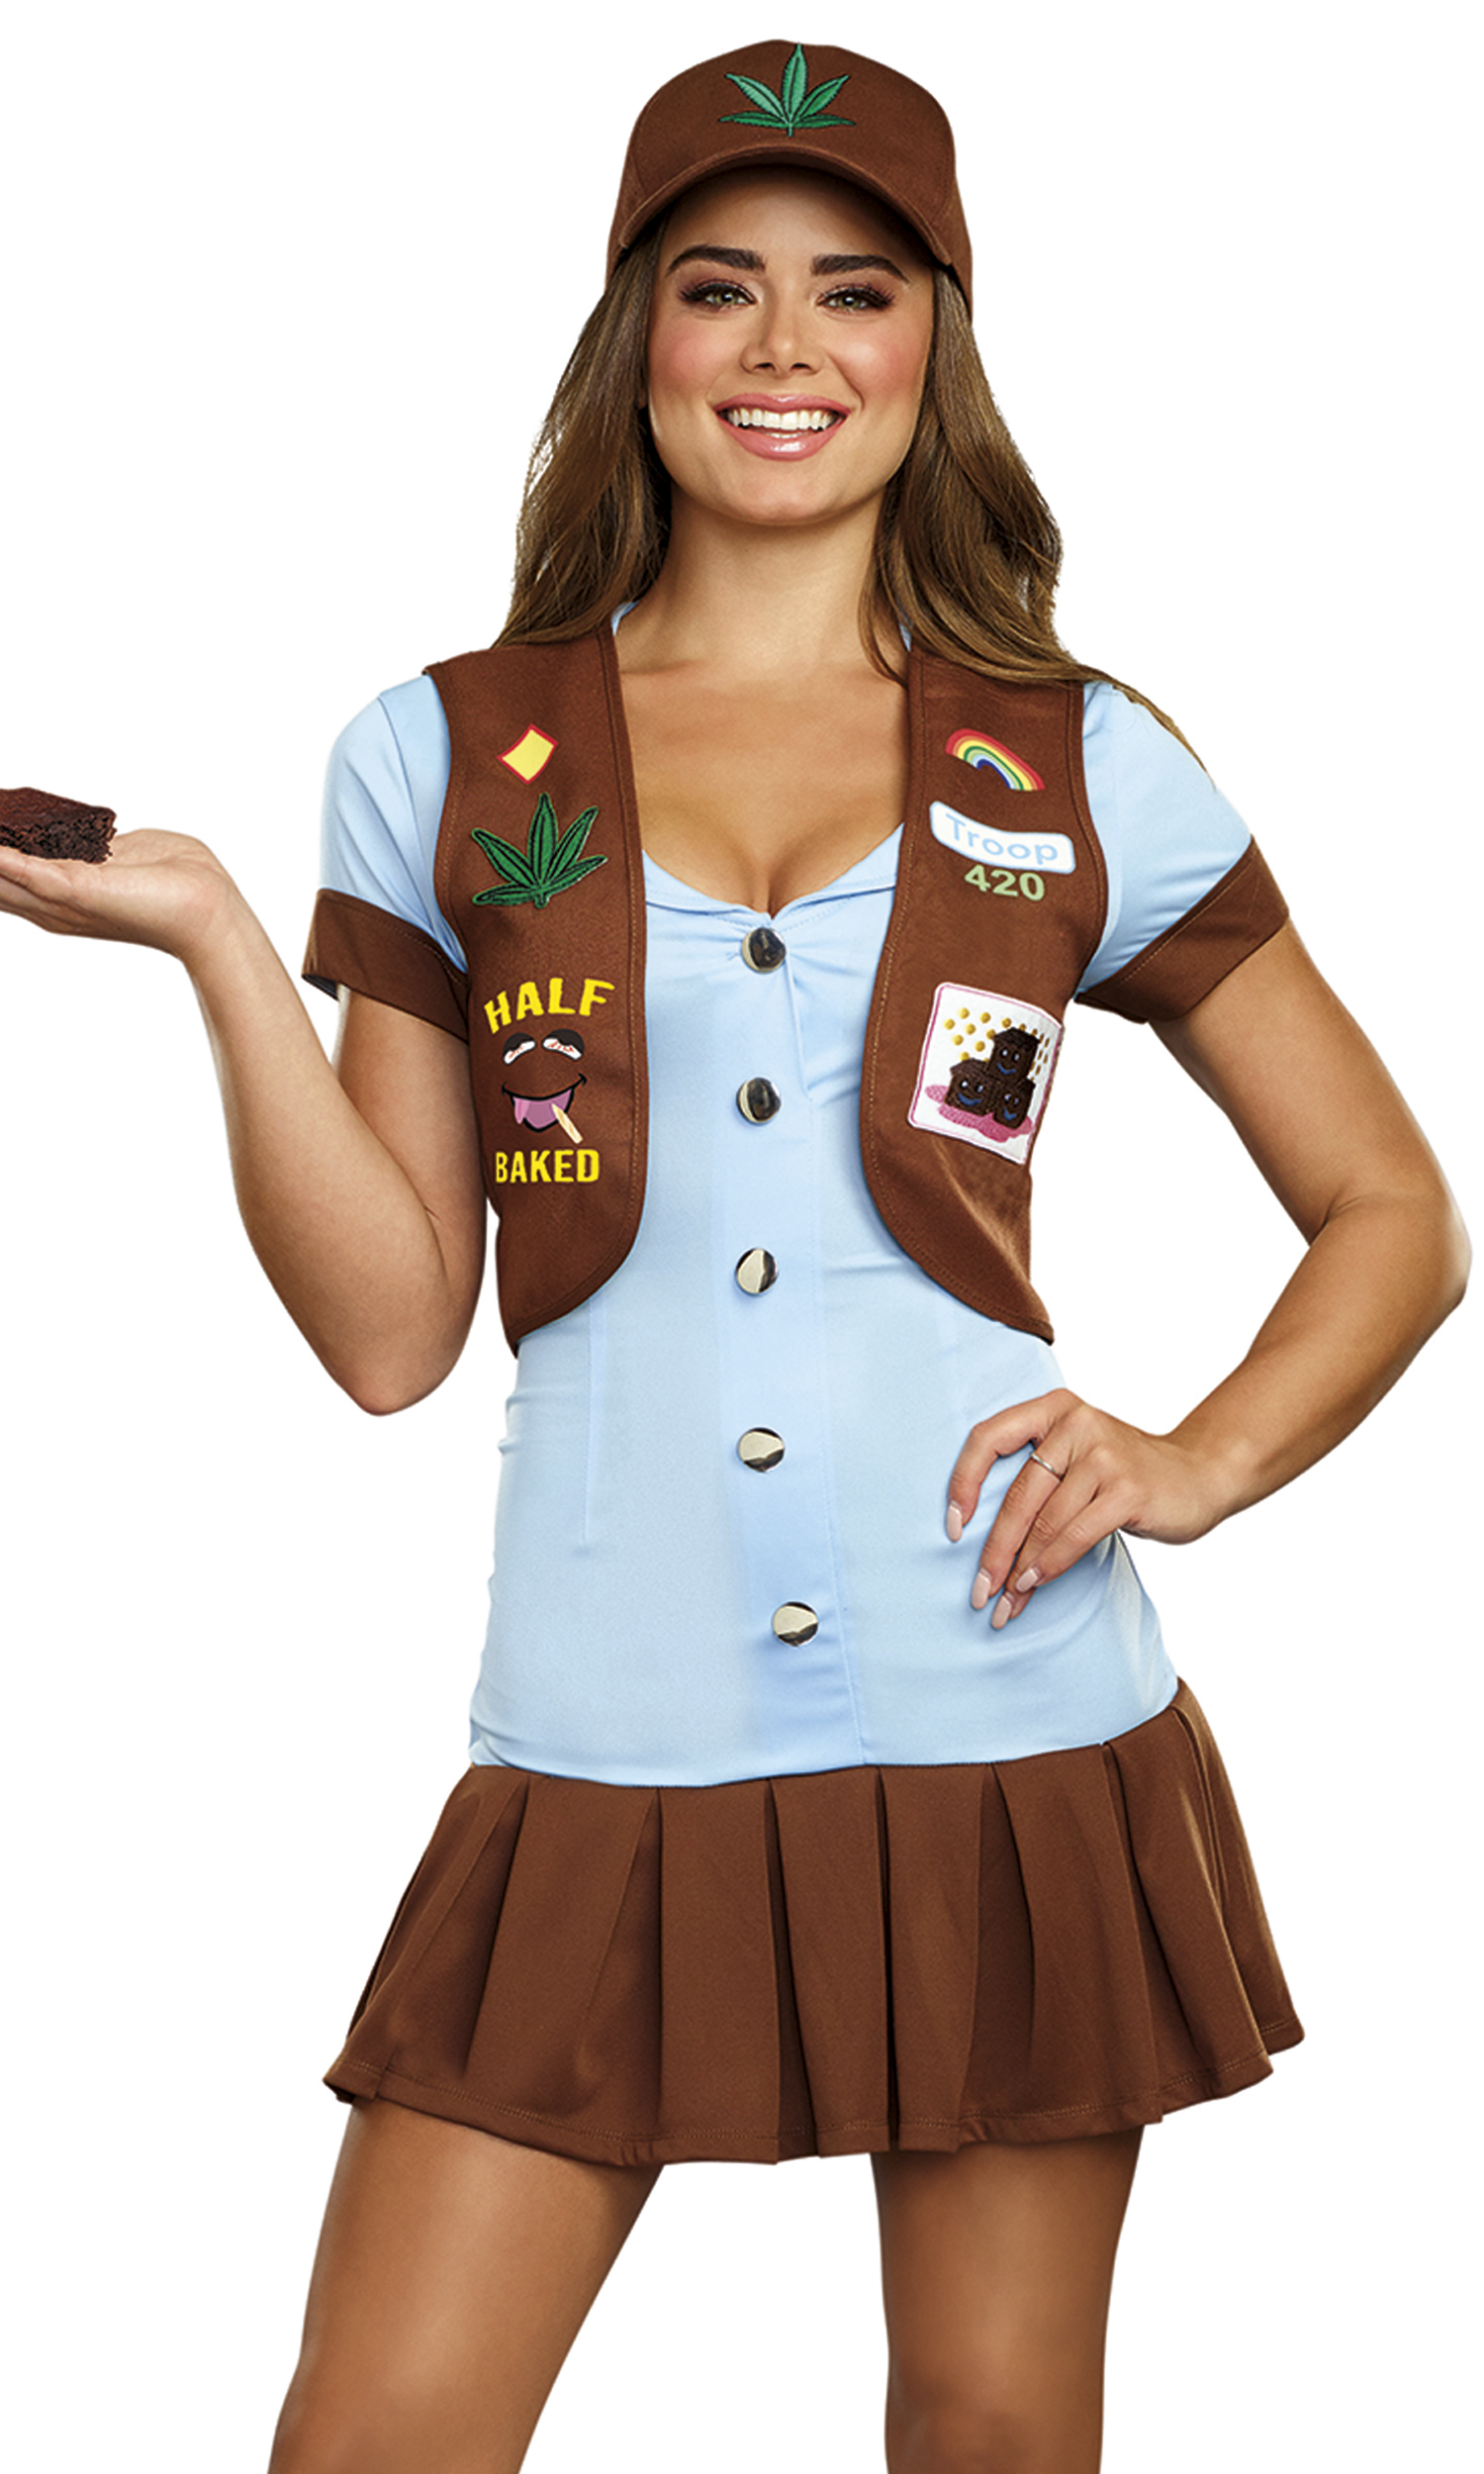 Girls teen costumes want your